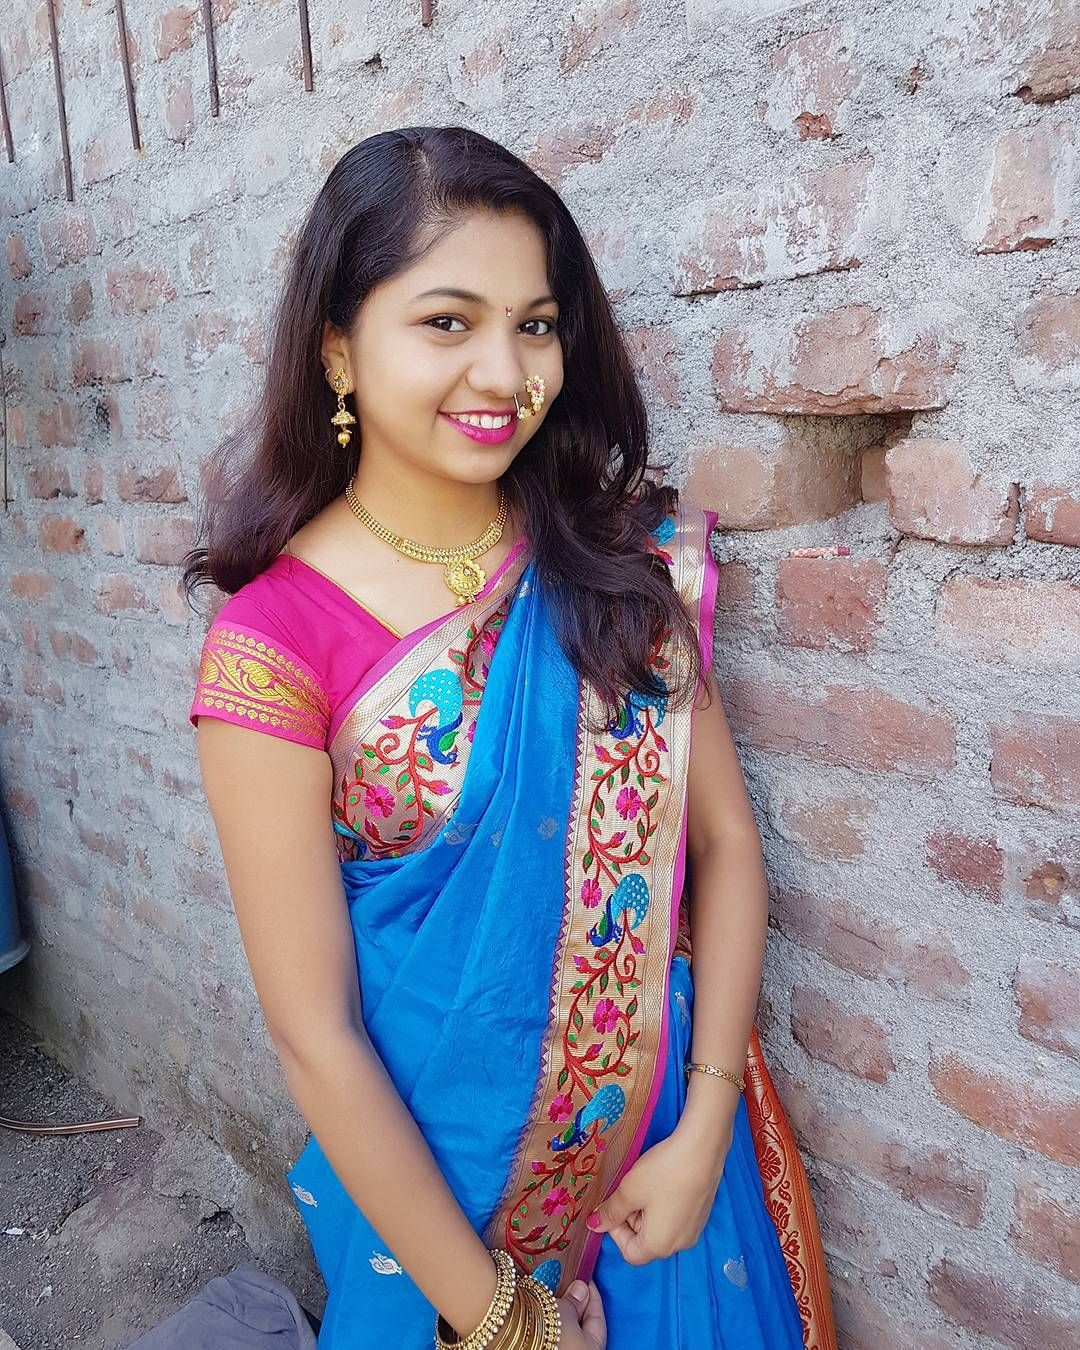 Free online dating sites in maharashtra